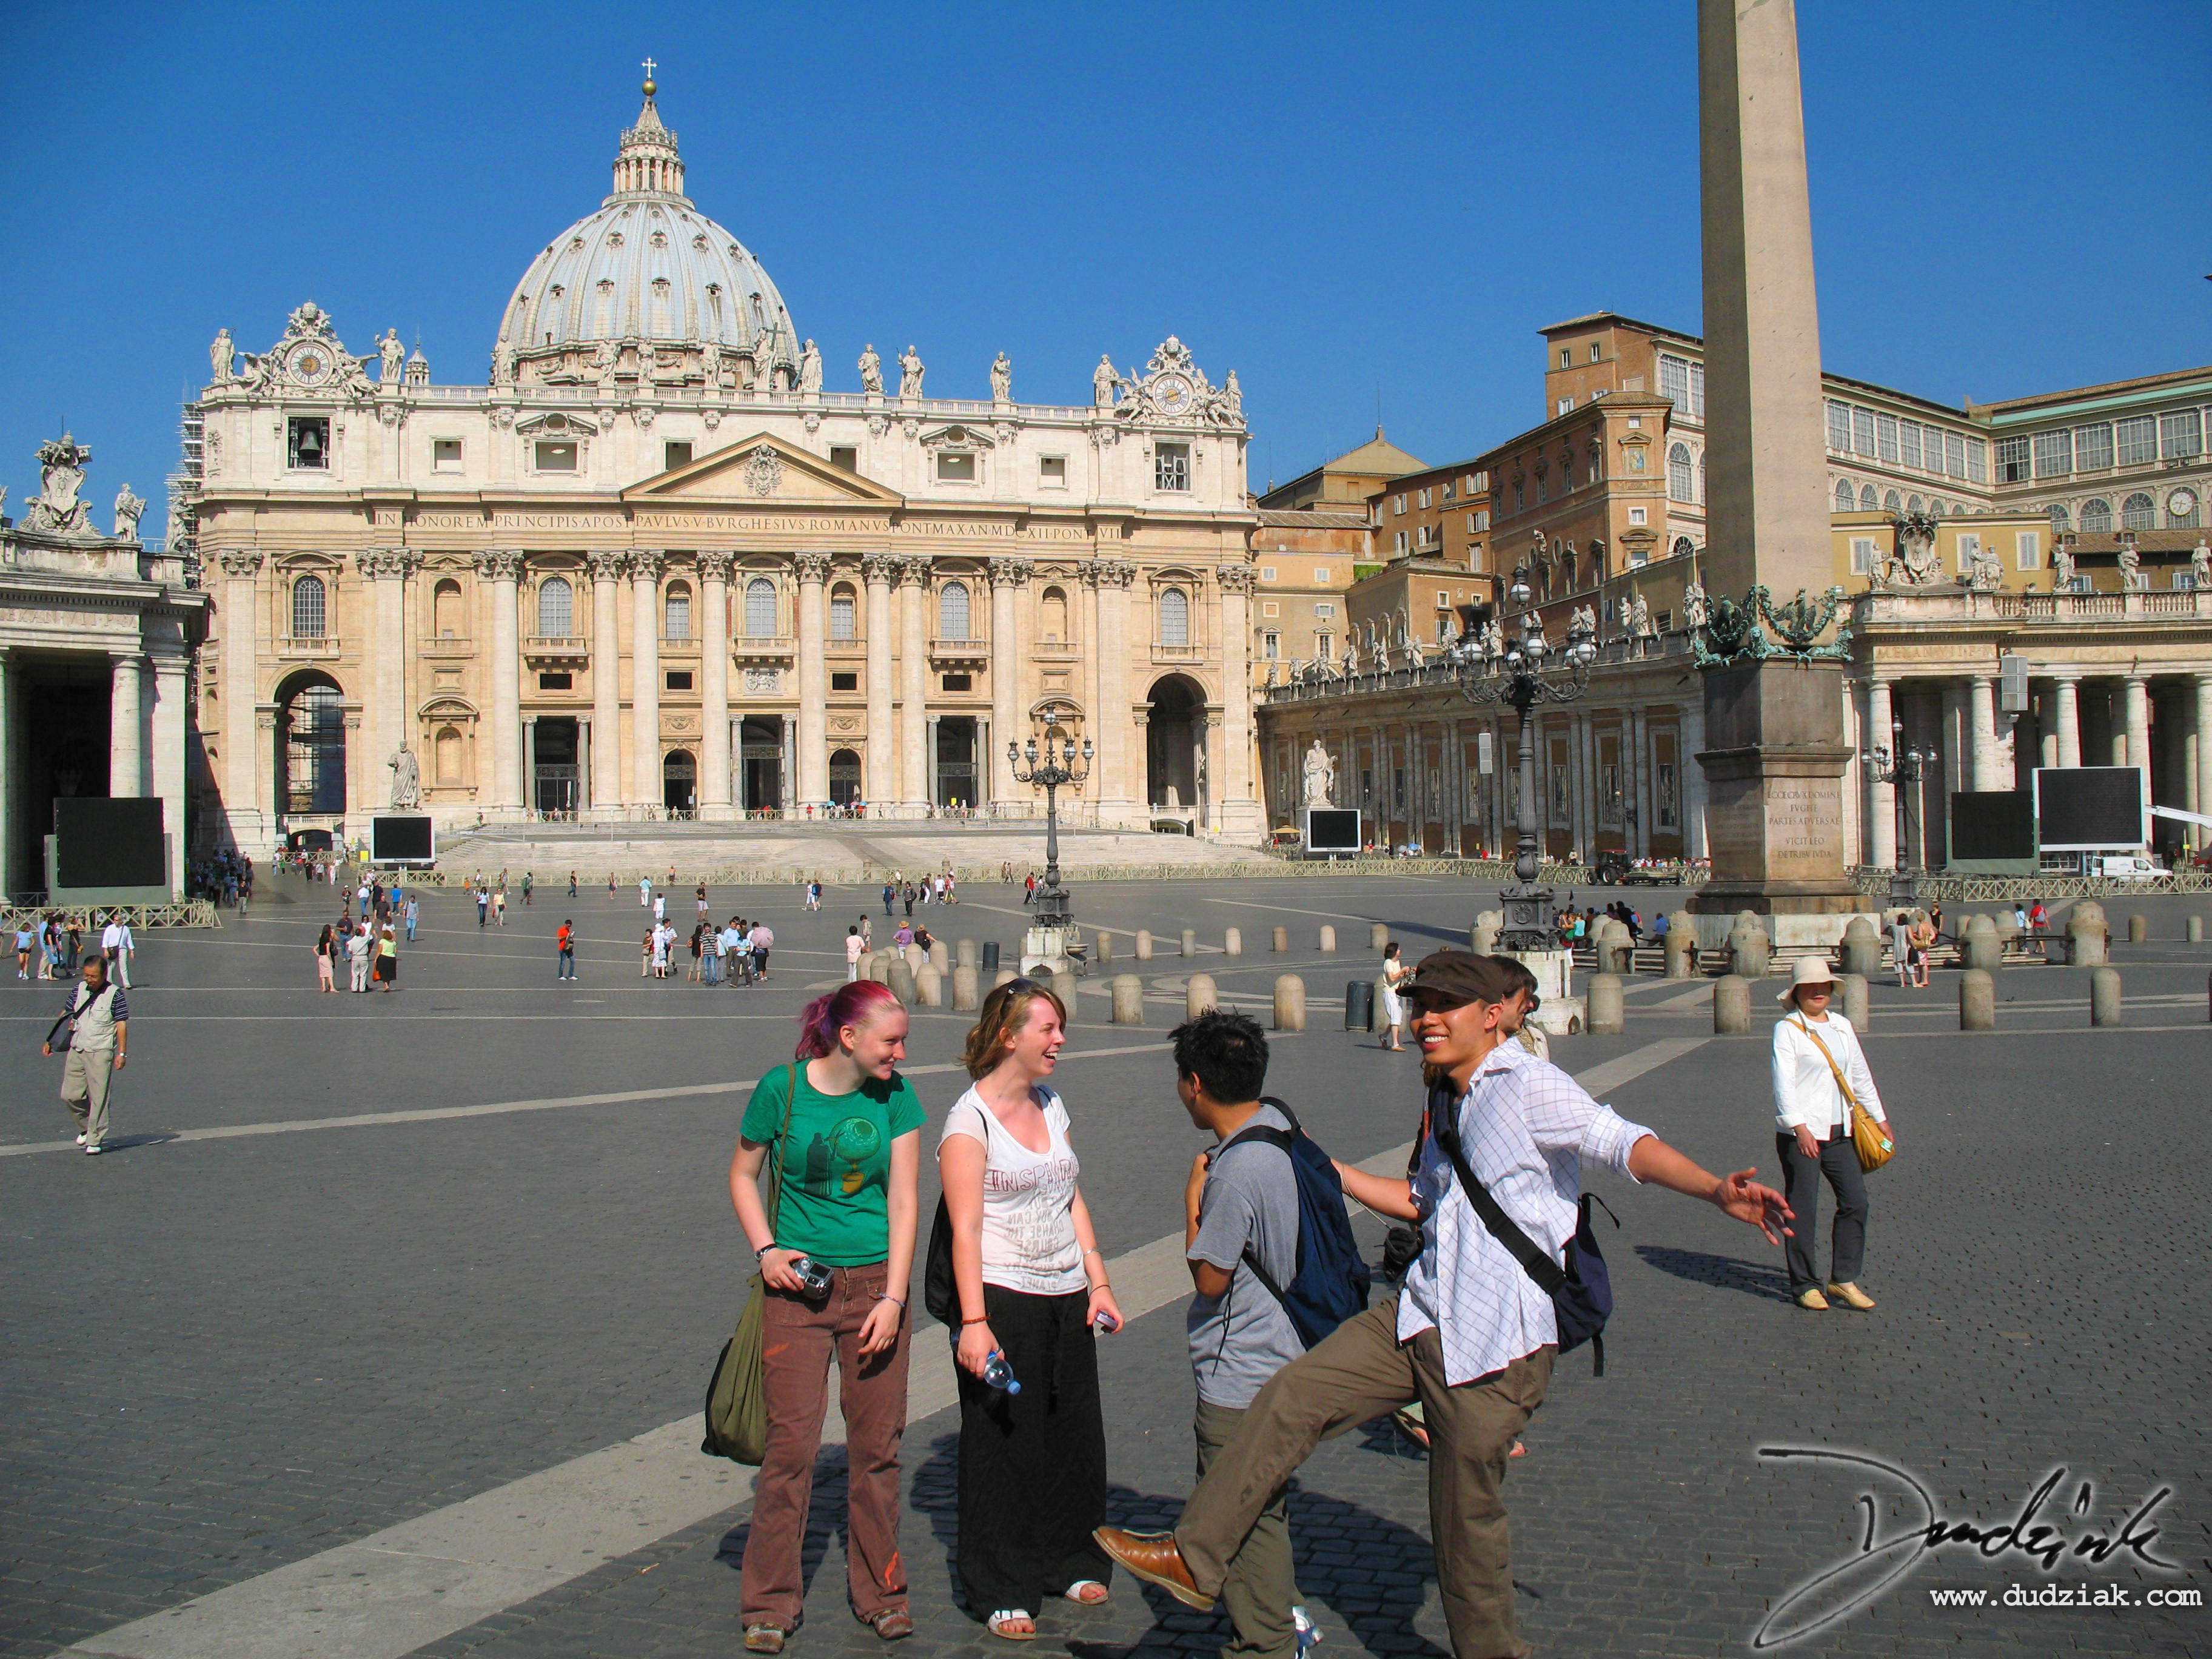 Saint Peter's Square (Piazza San Pietro) having fun.